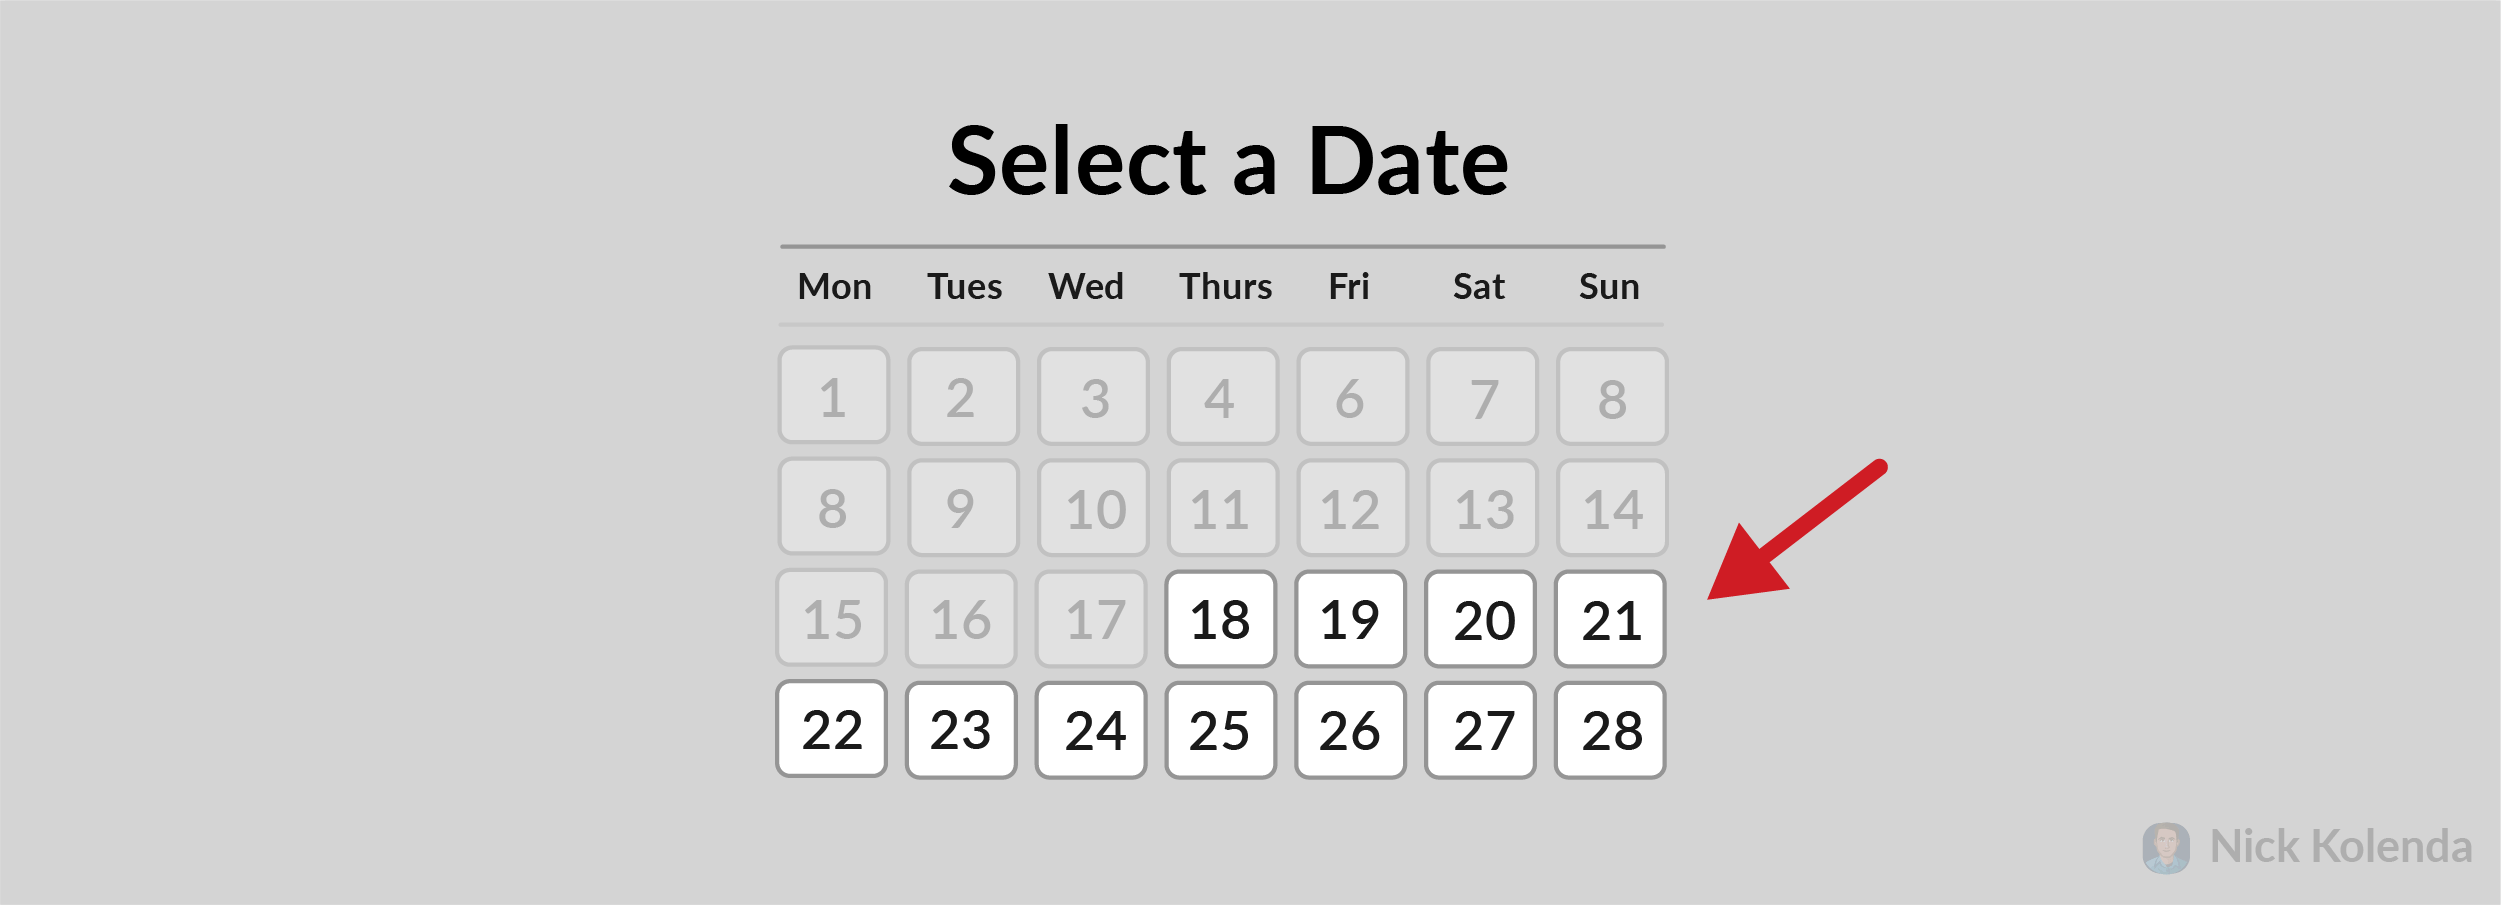 Calendar that only shows available dates